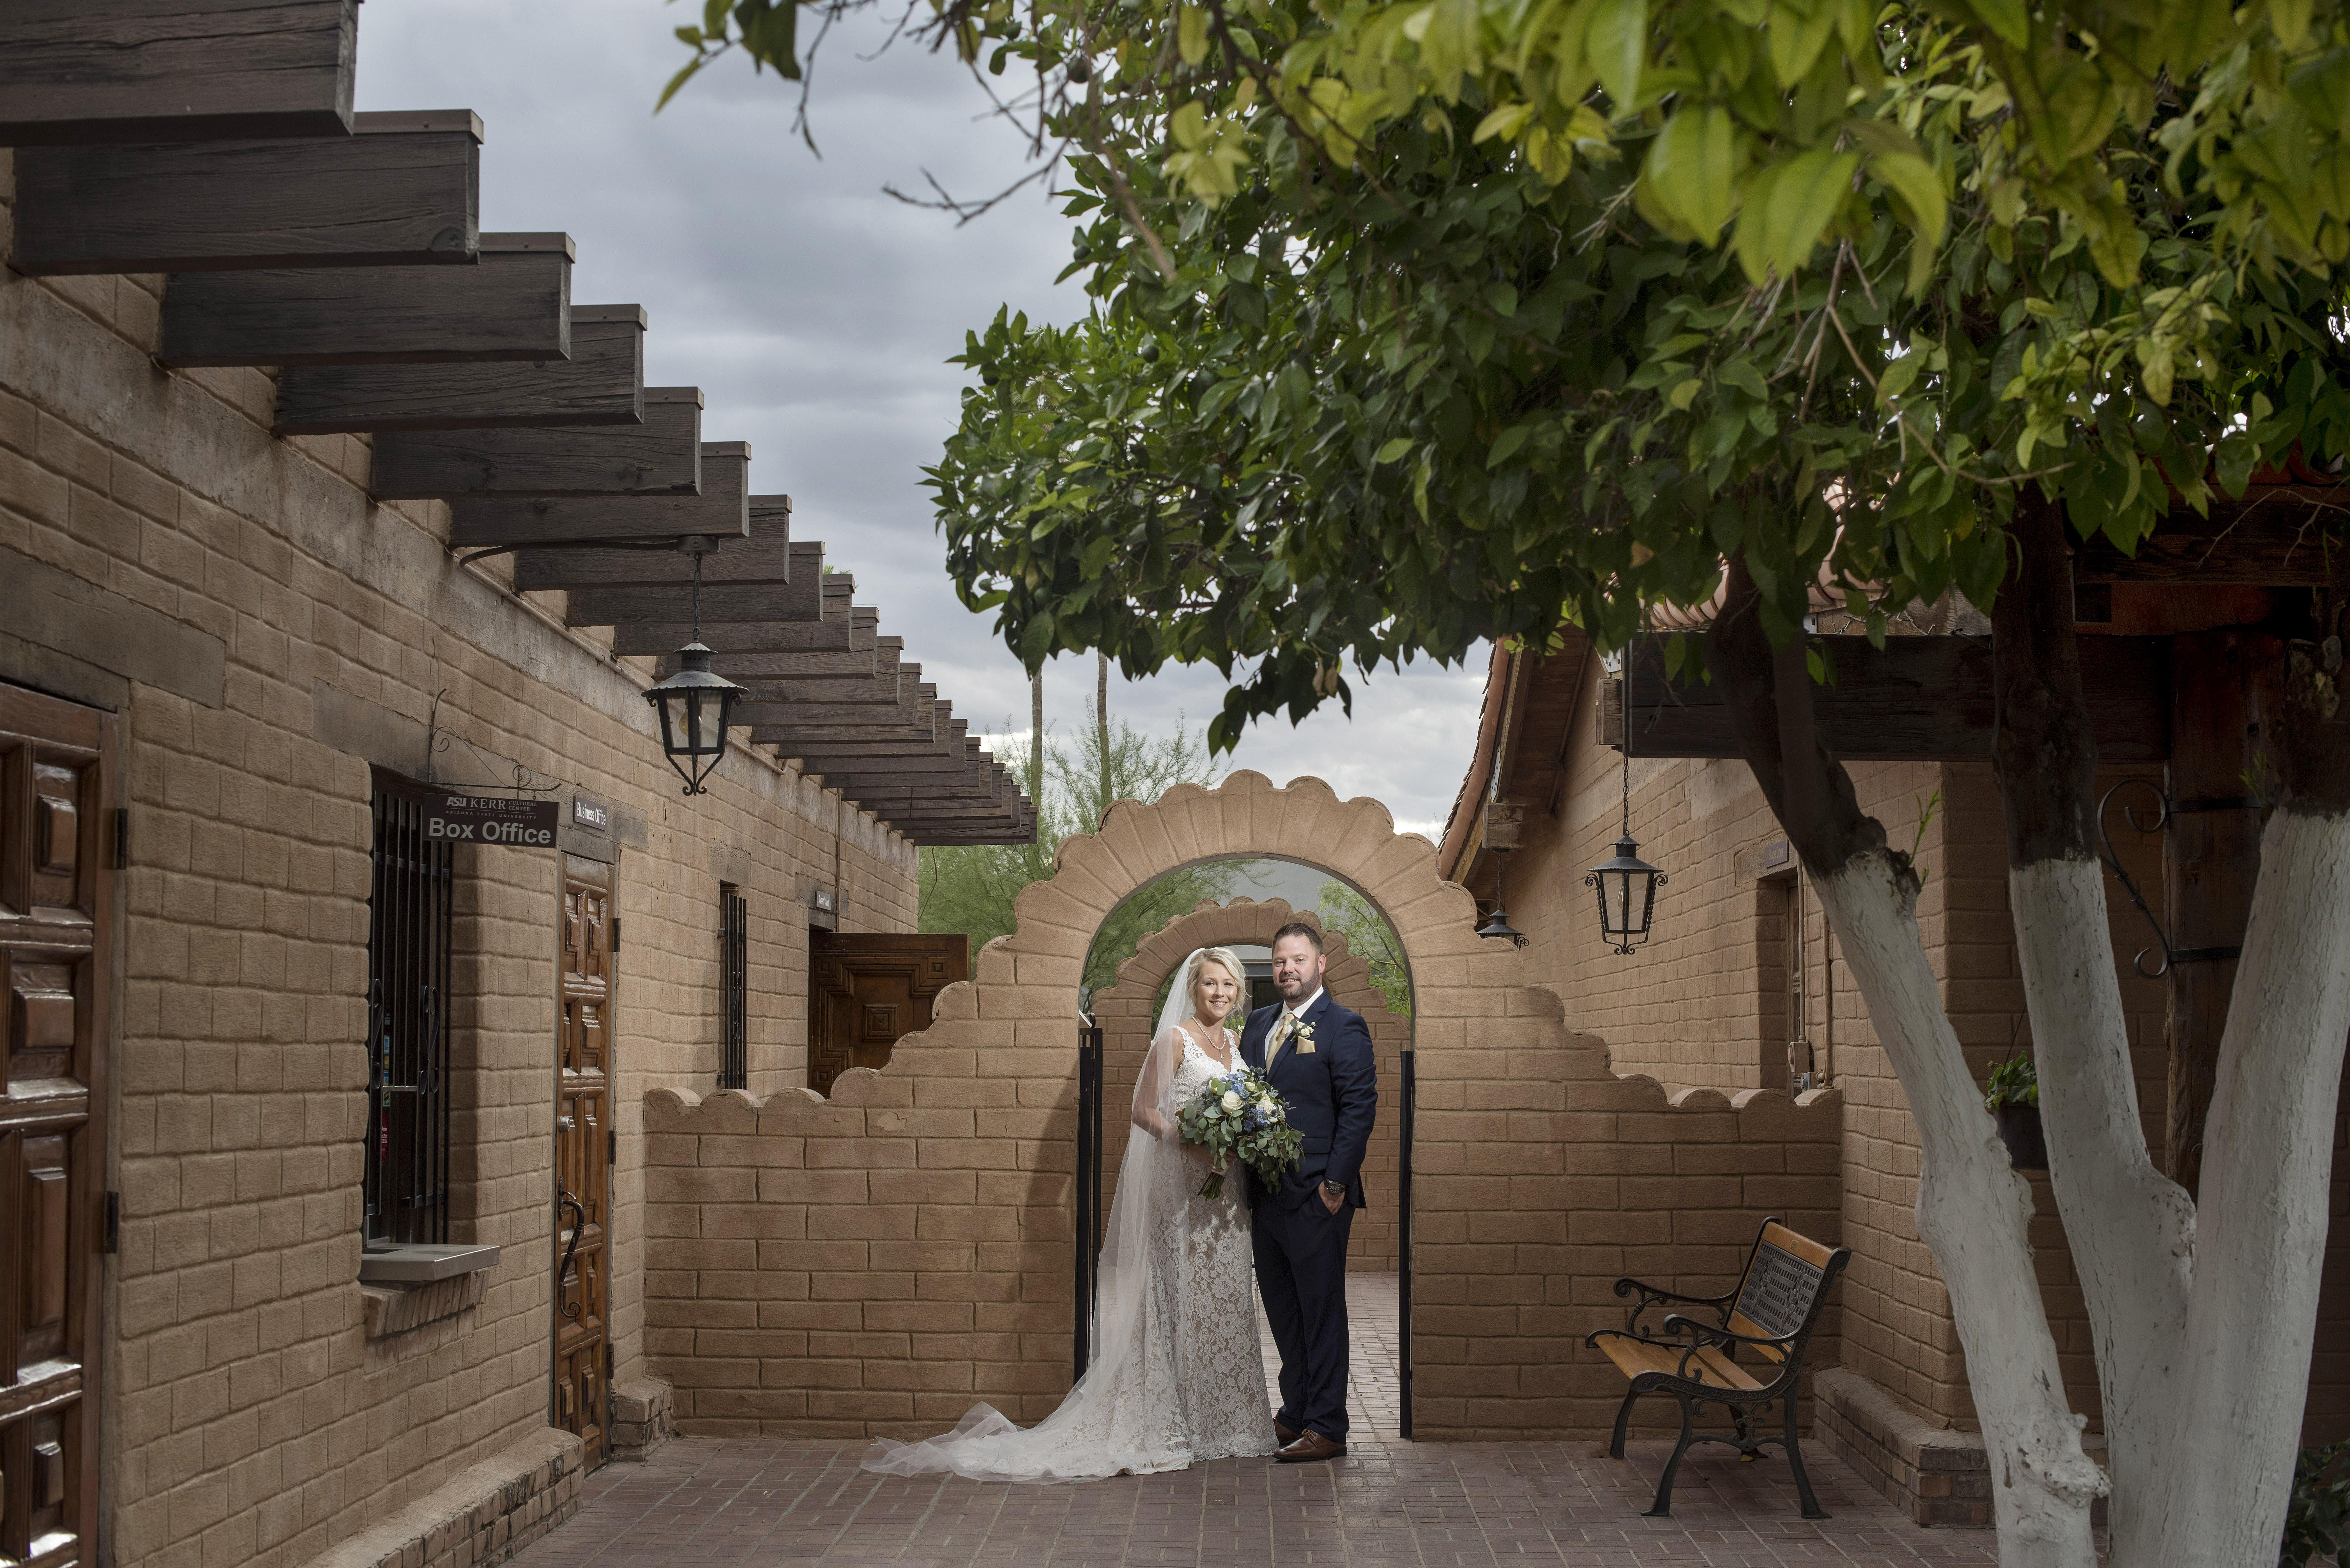 Married couple on wedding day in adobe archway